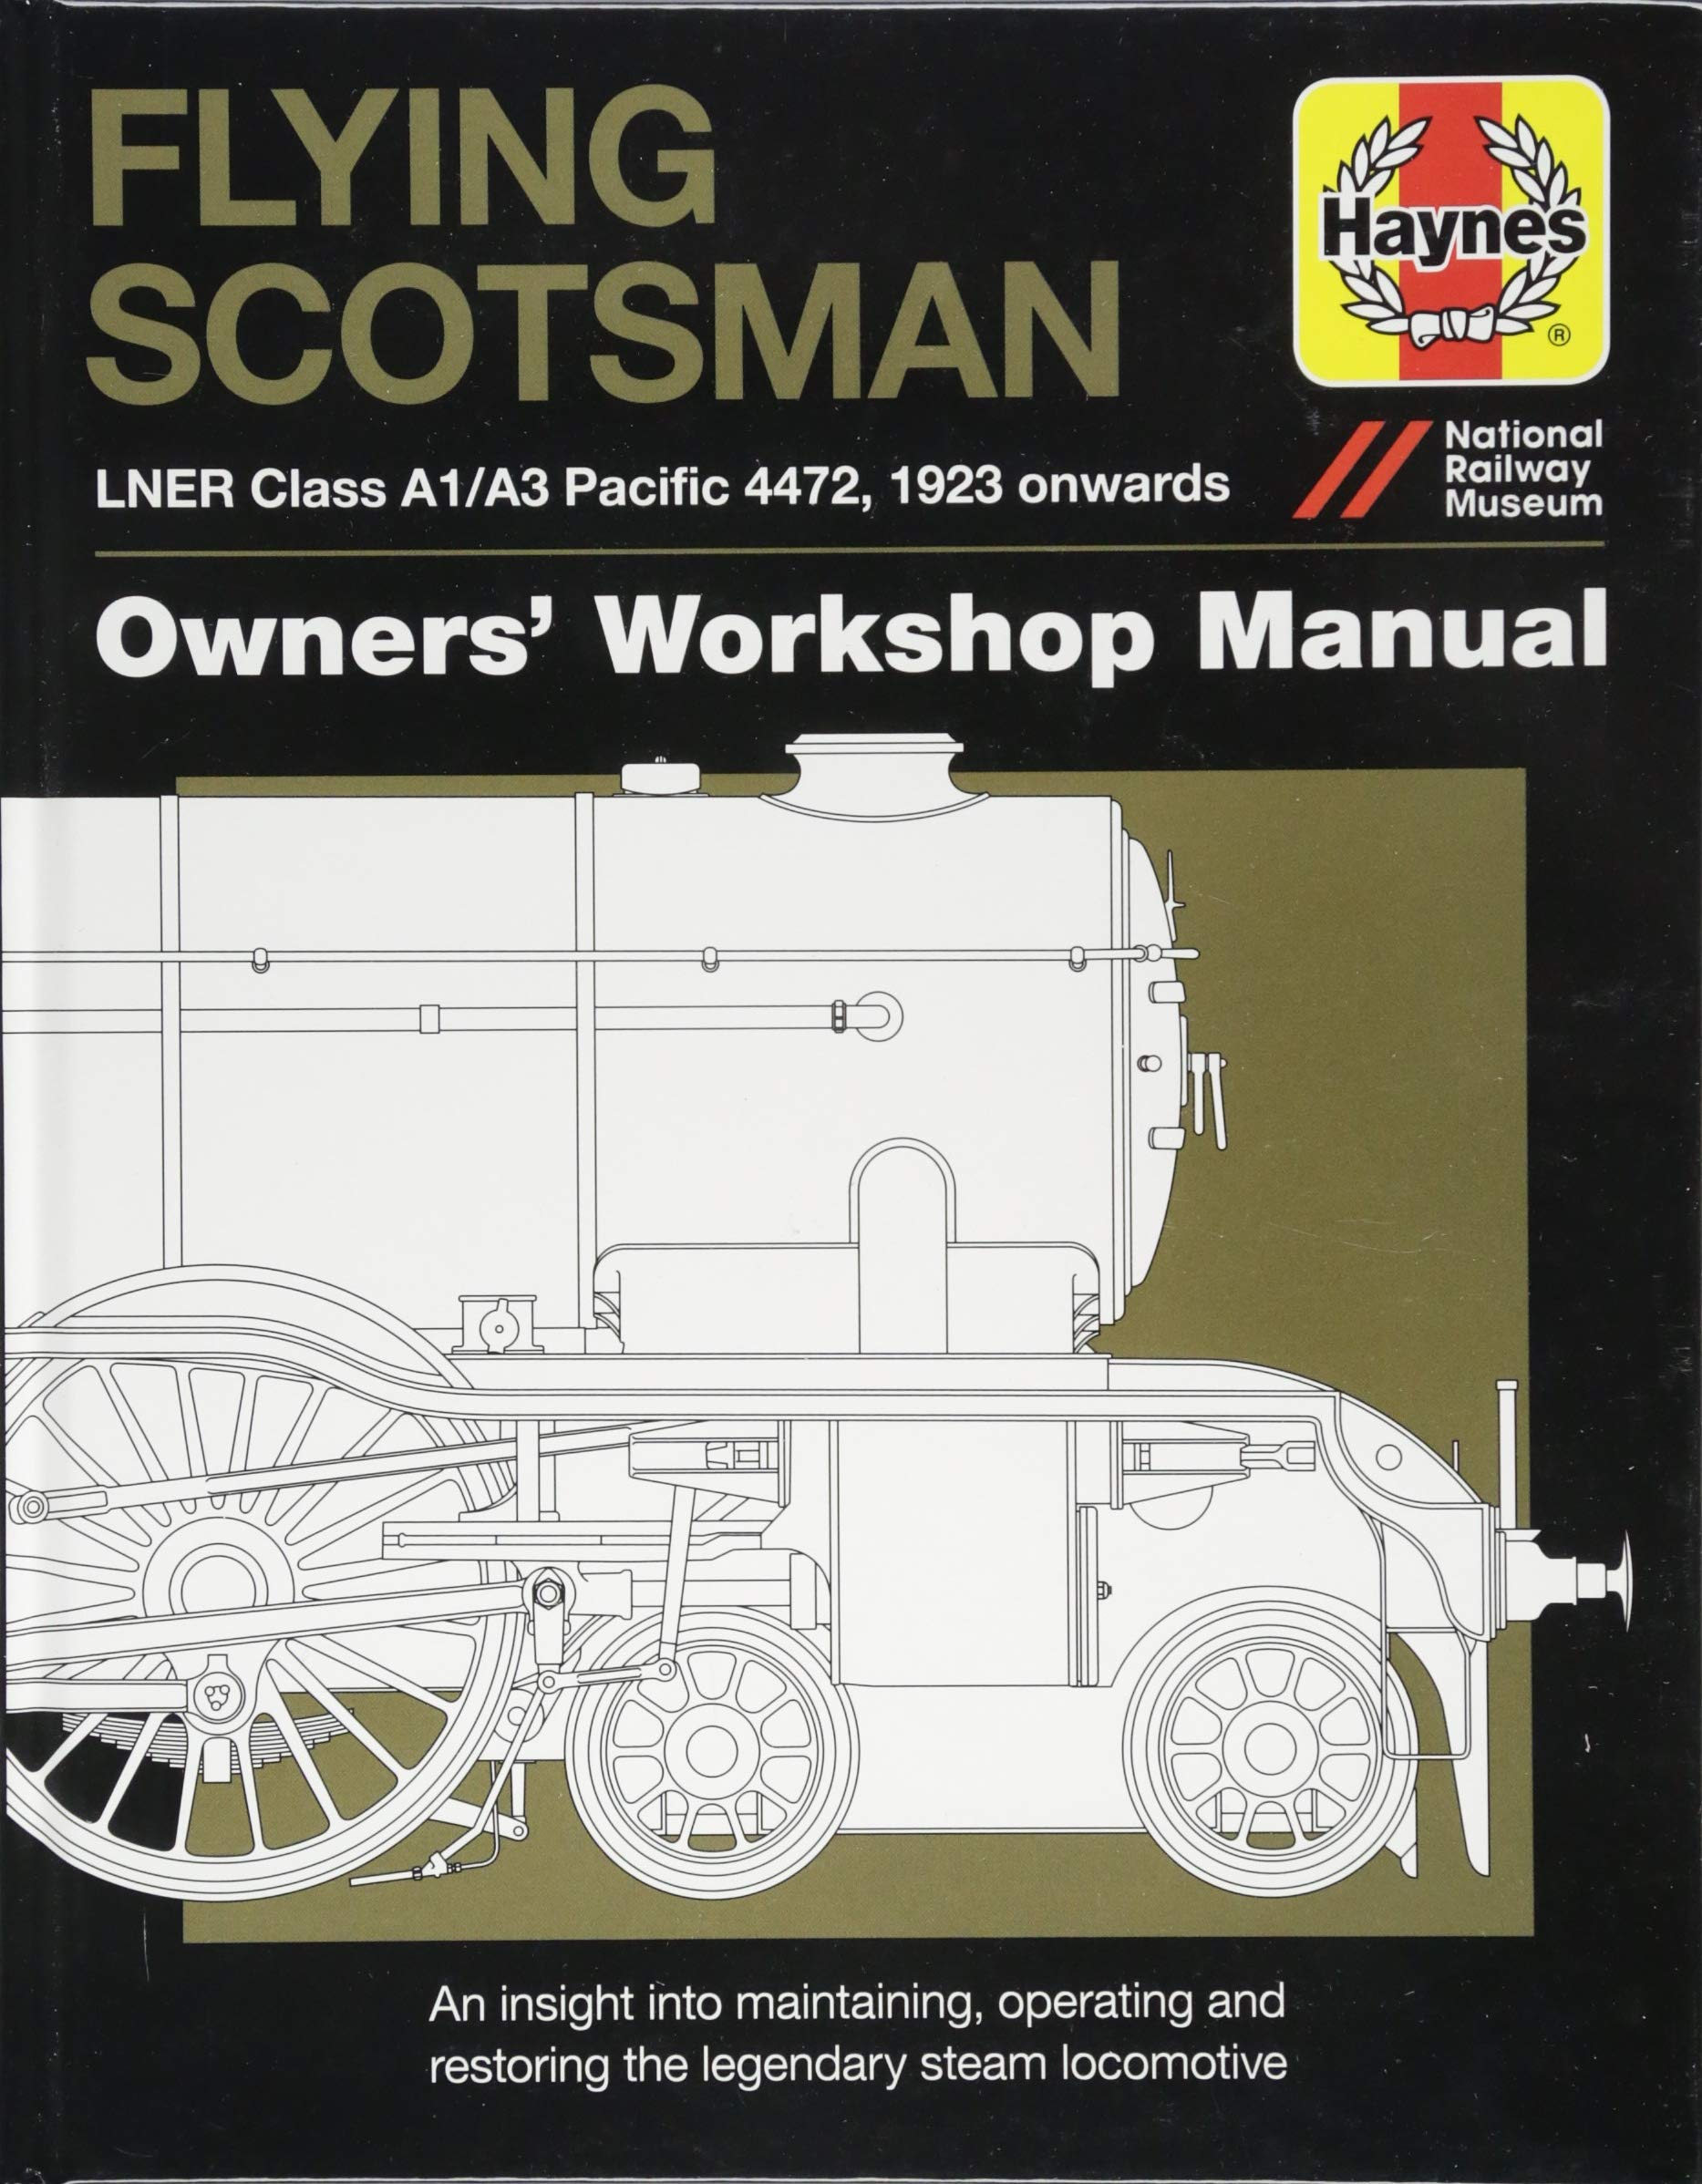 Flying Scotsman Manual: An Insight into Maintaining, Operating and  Restoring the Legendary Steam Locomotive (Owners Workshop Manual) (Haynes  Owners' ...